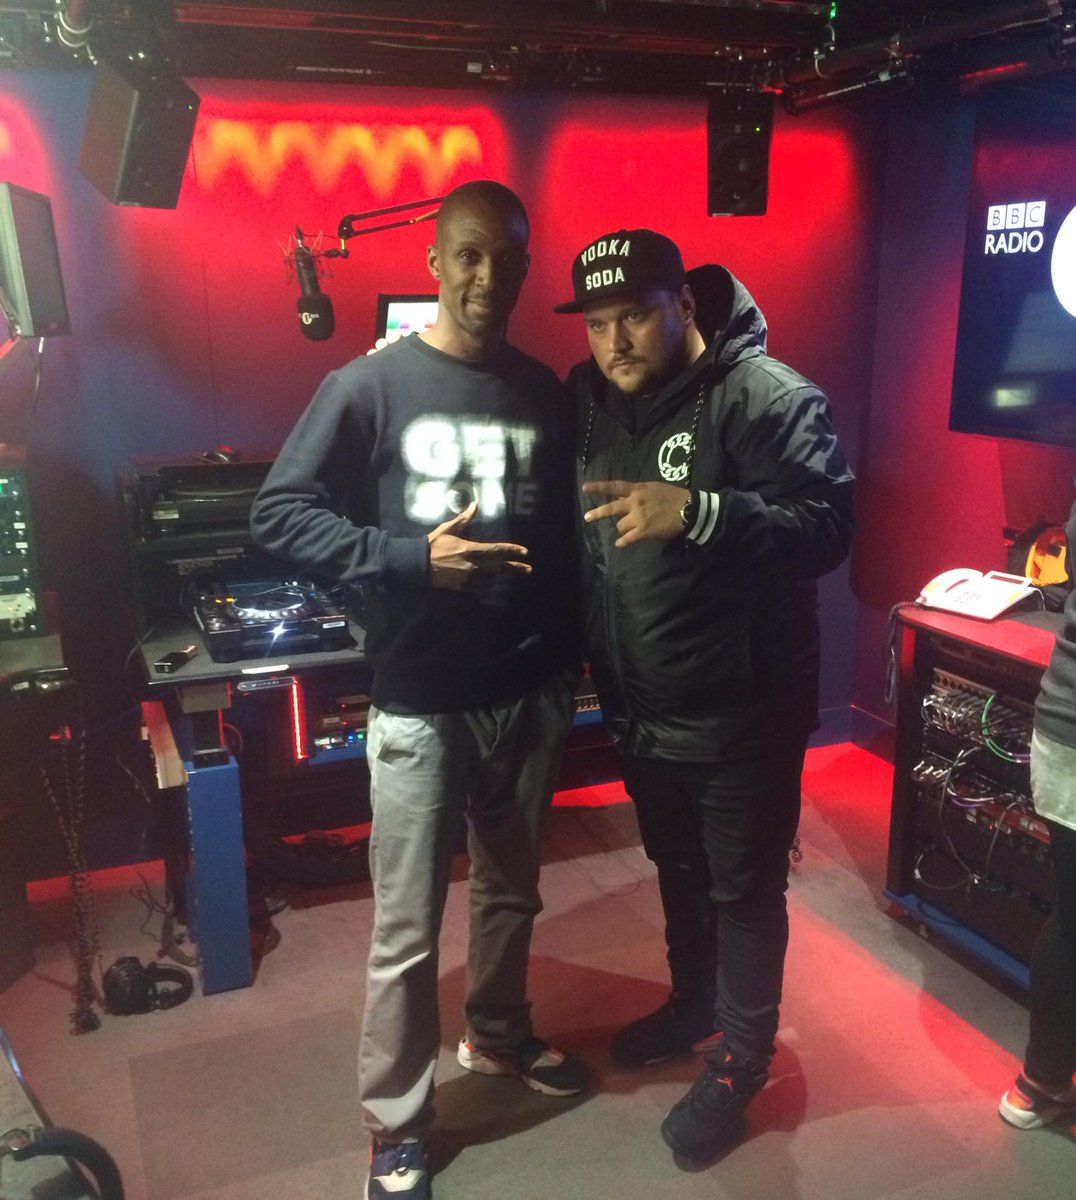 Call the Fireman!!! Big up my boy @CharlieSloth #FITB #Comingsoon http://t.co/SDTjK19PQT